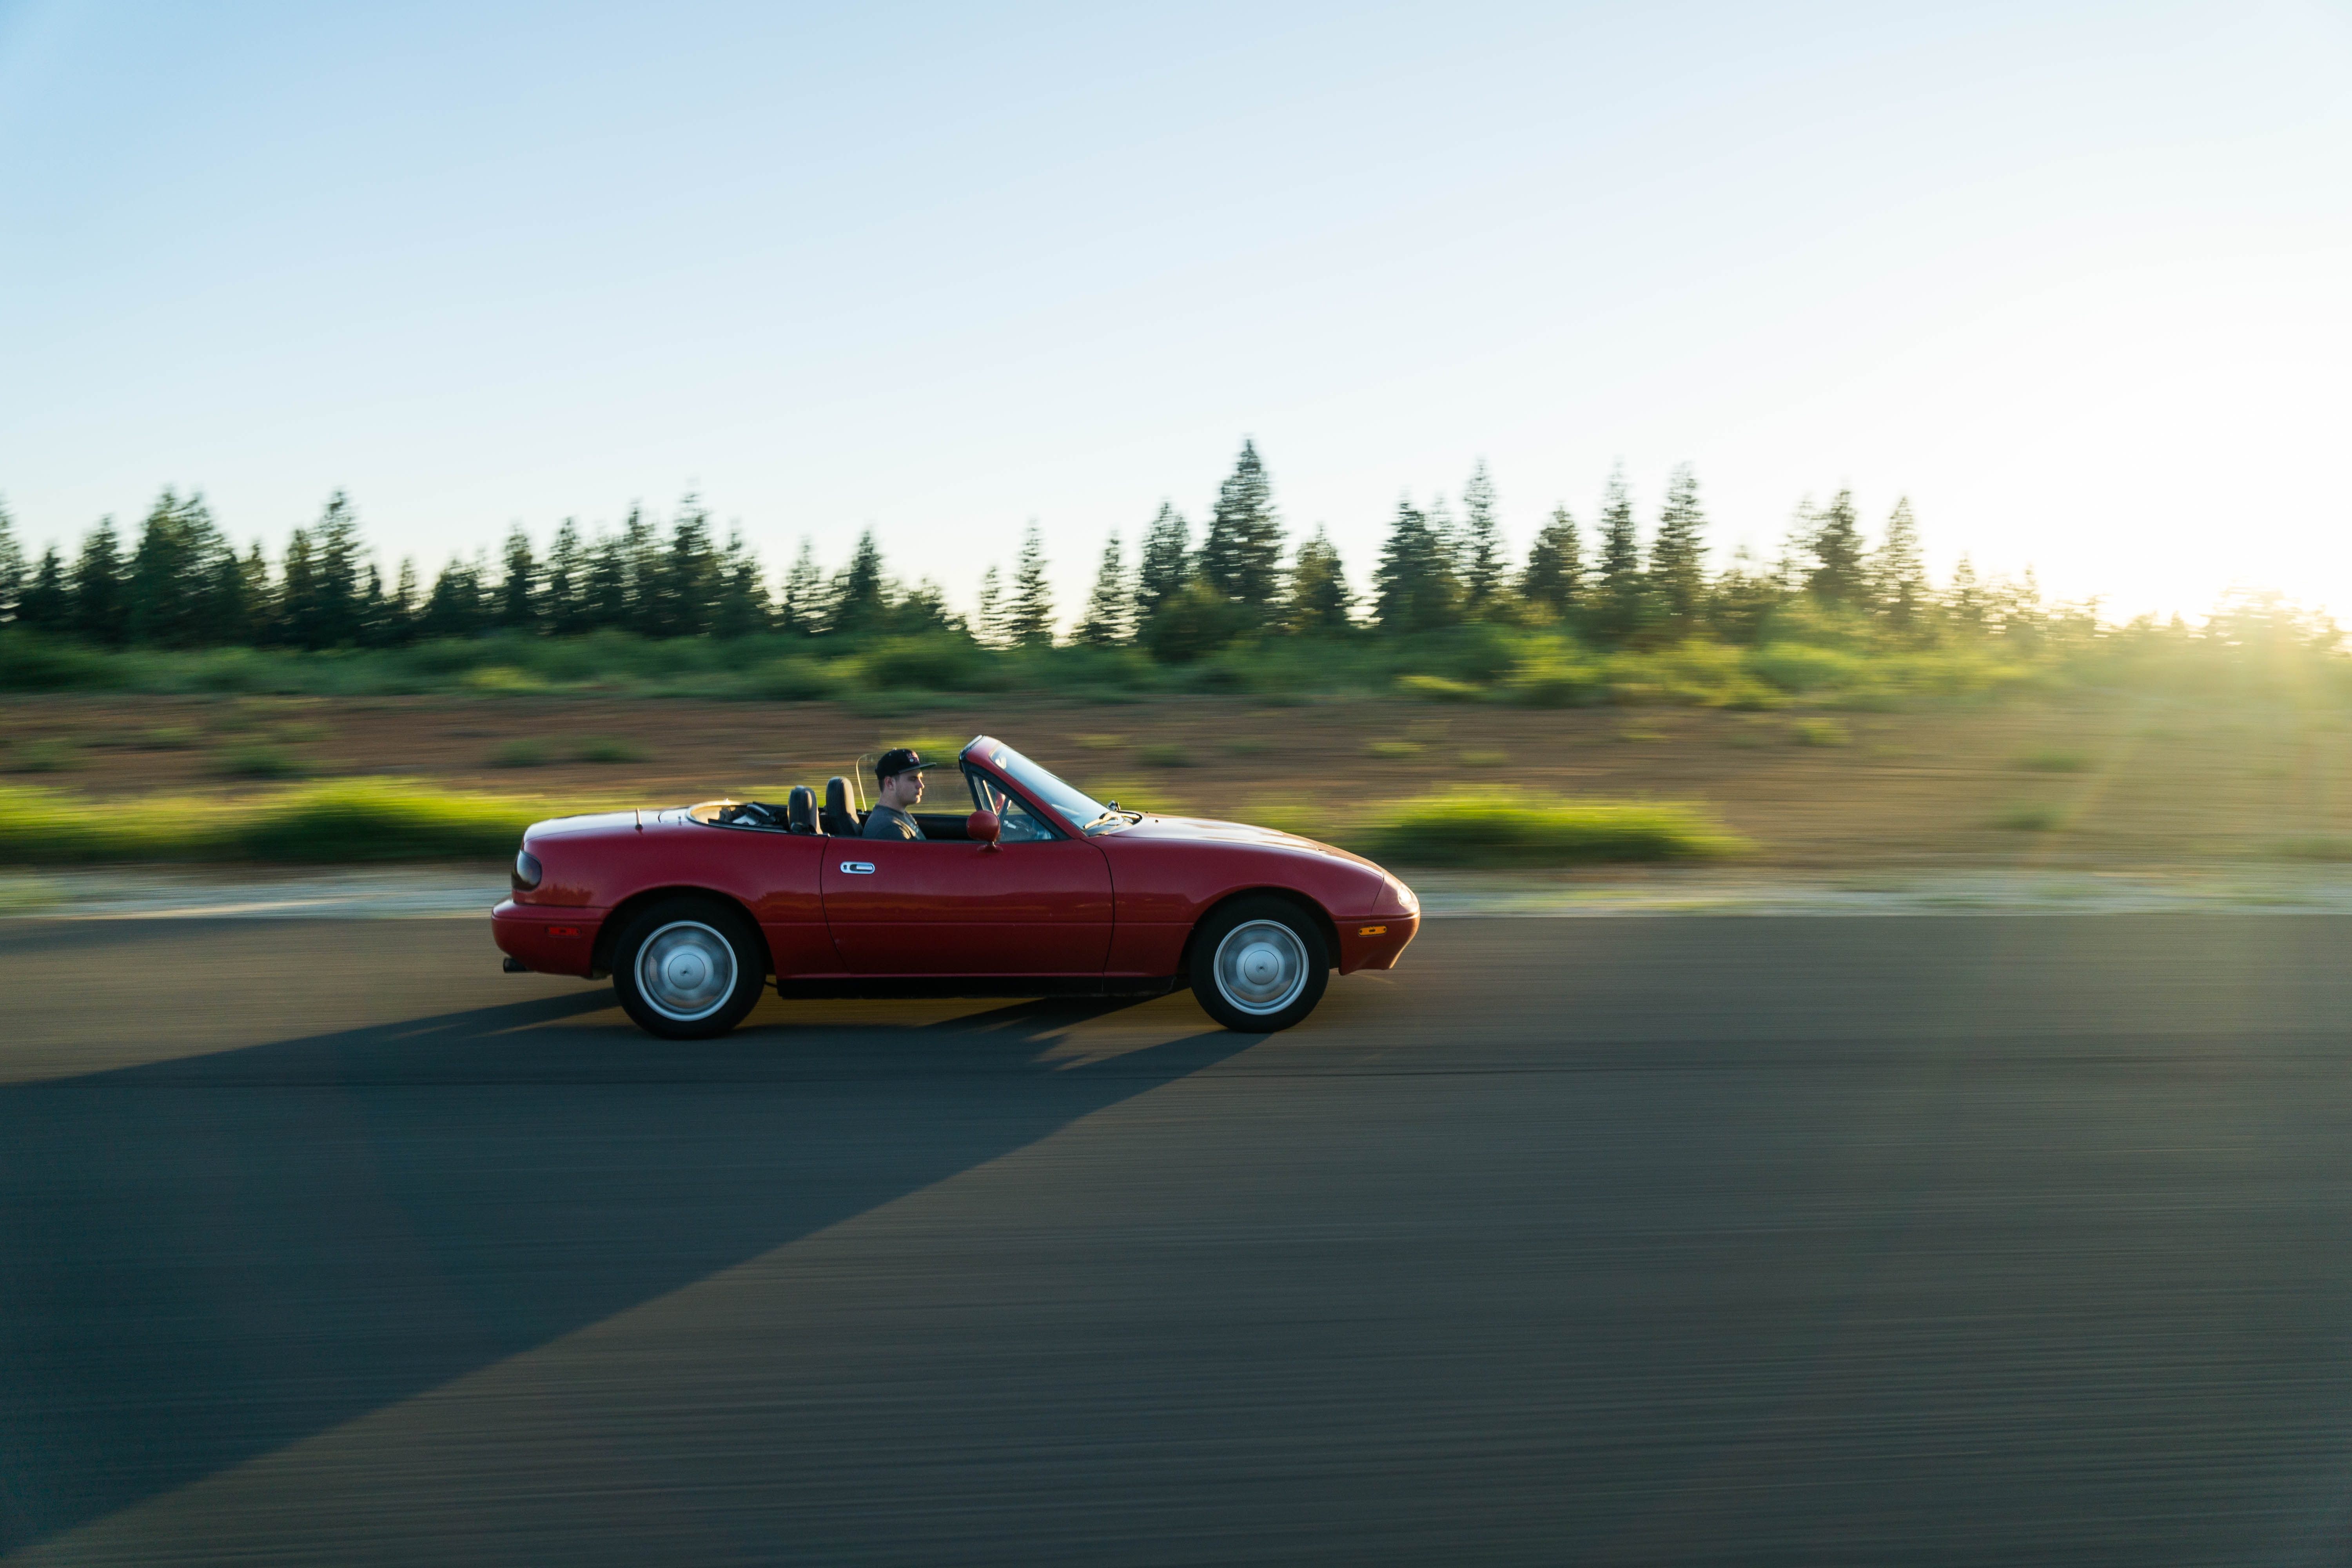 panning photography of man in red convertible